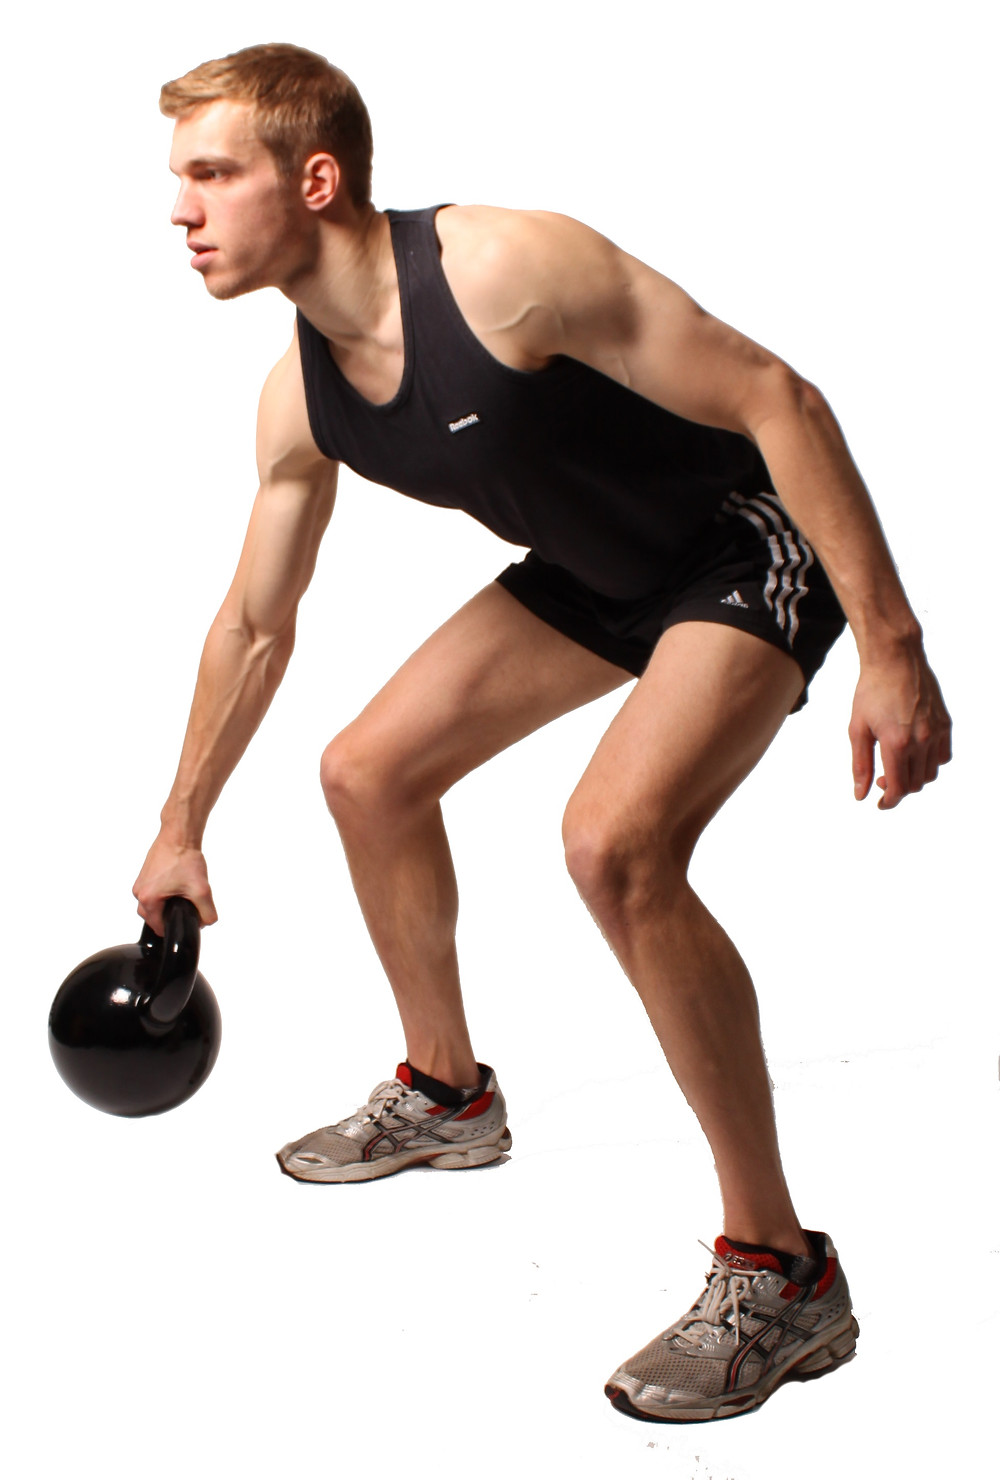 man performing kettlebell exercises